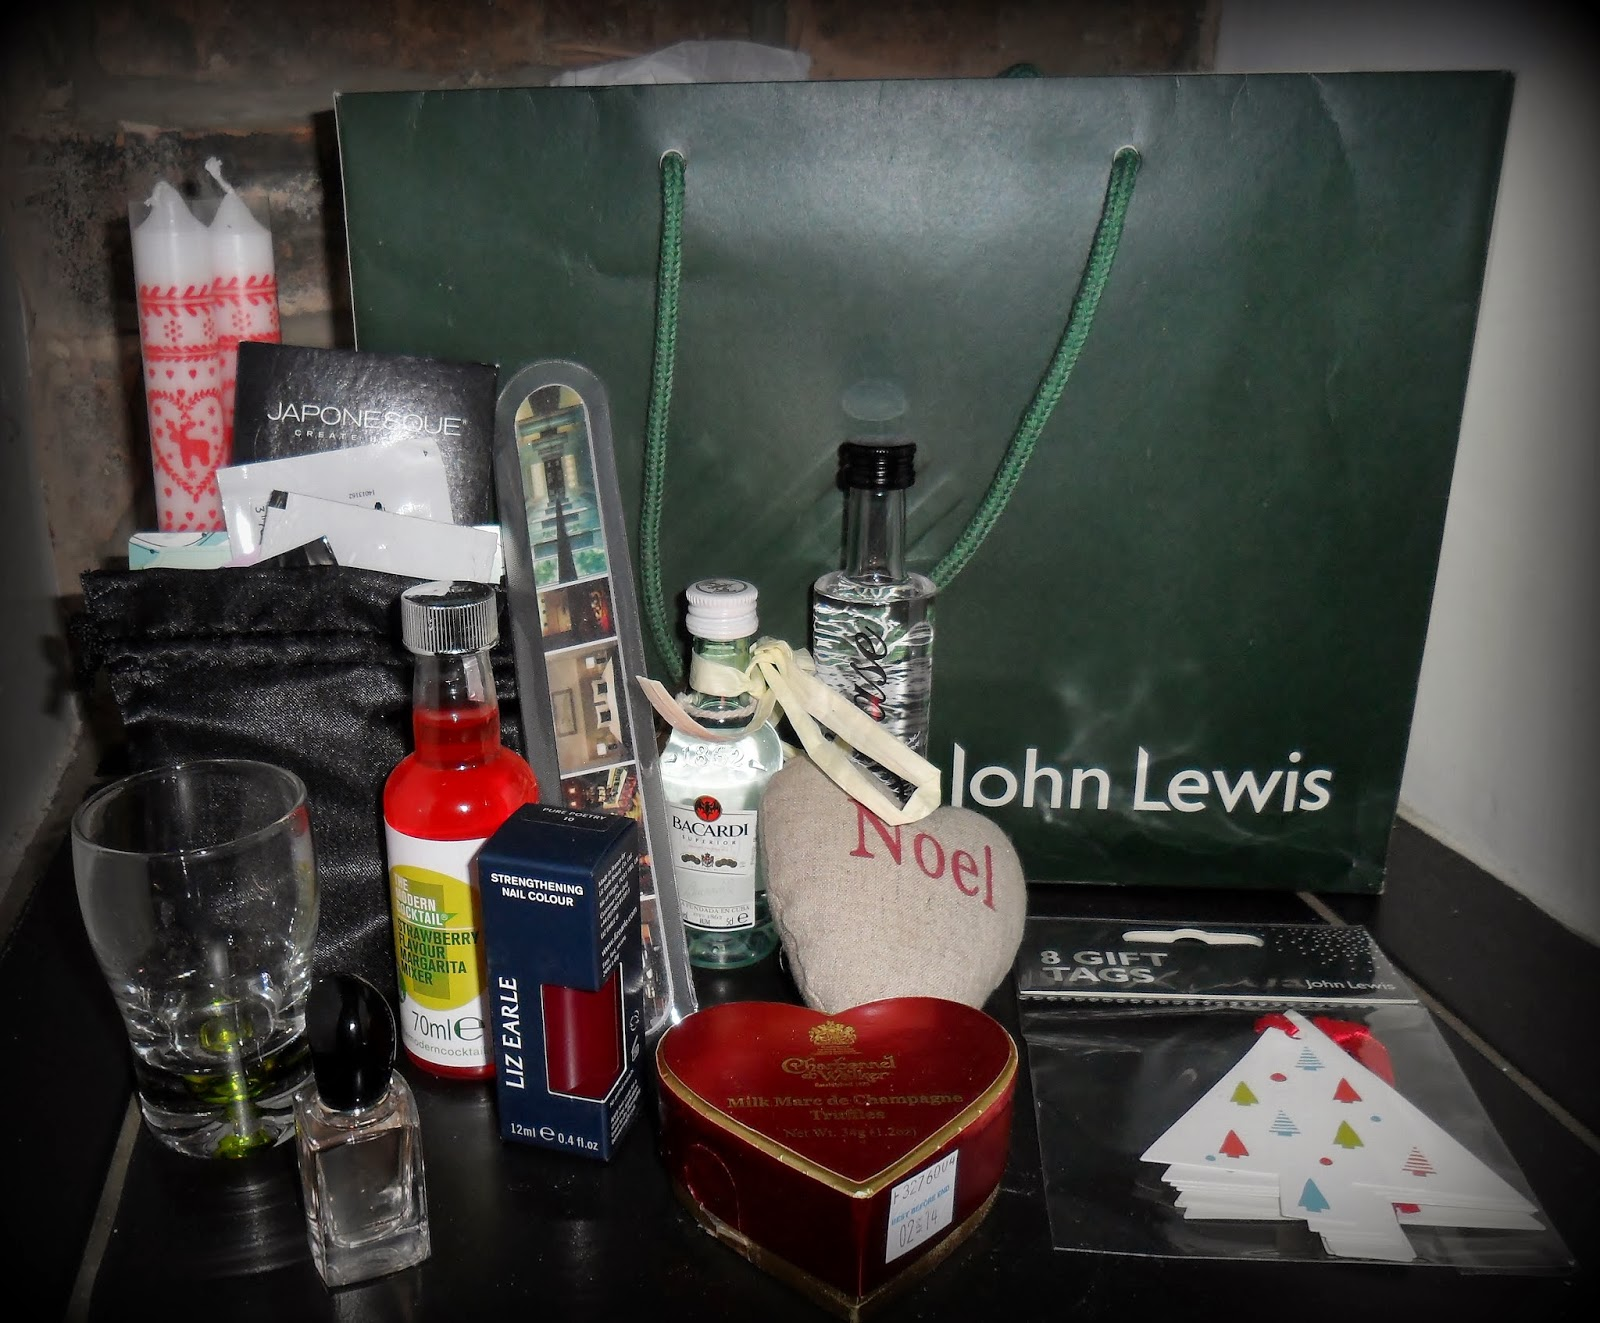 John Lewis Press Event, Charbonnel et Walker chocolates, Liz Earle Nail Polish, Kuku Club